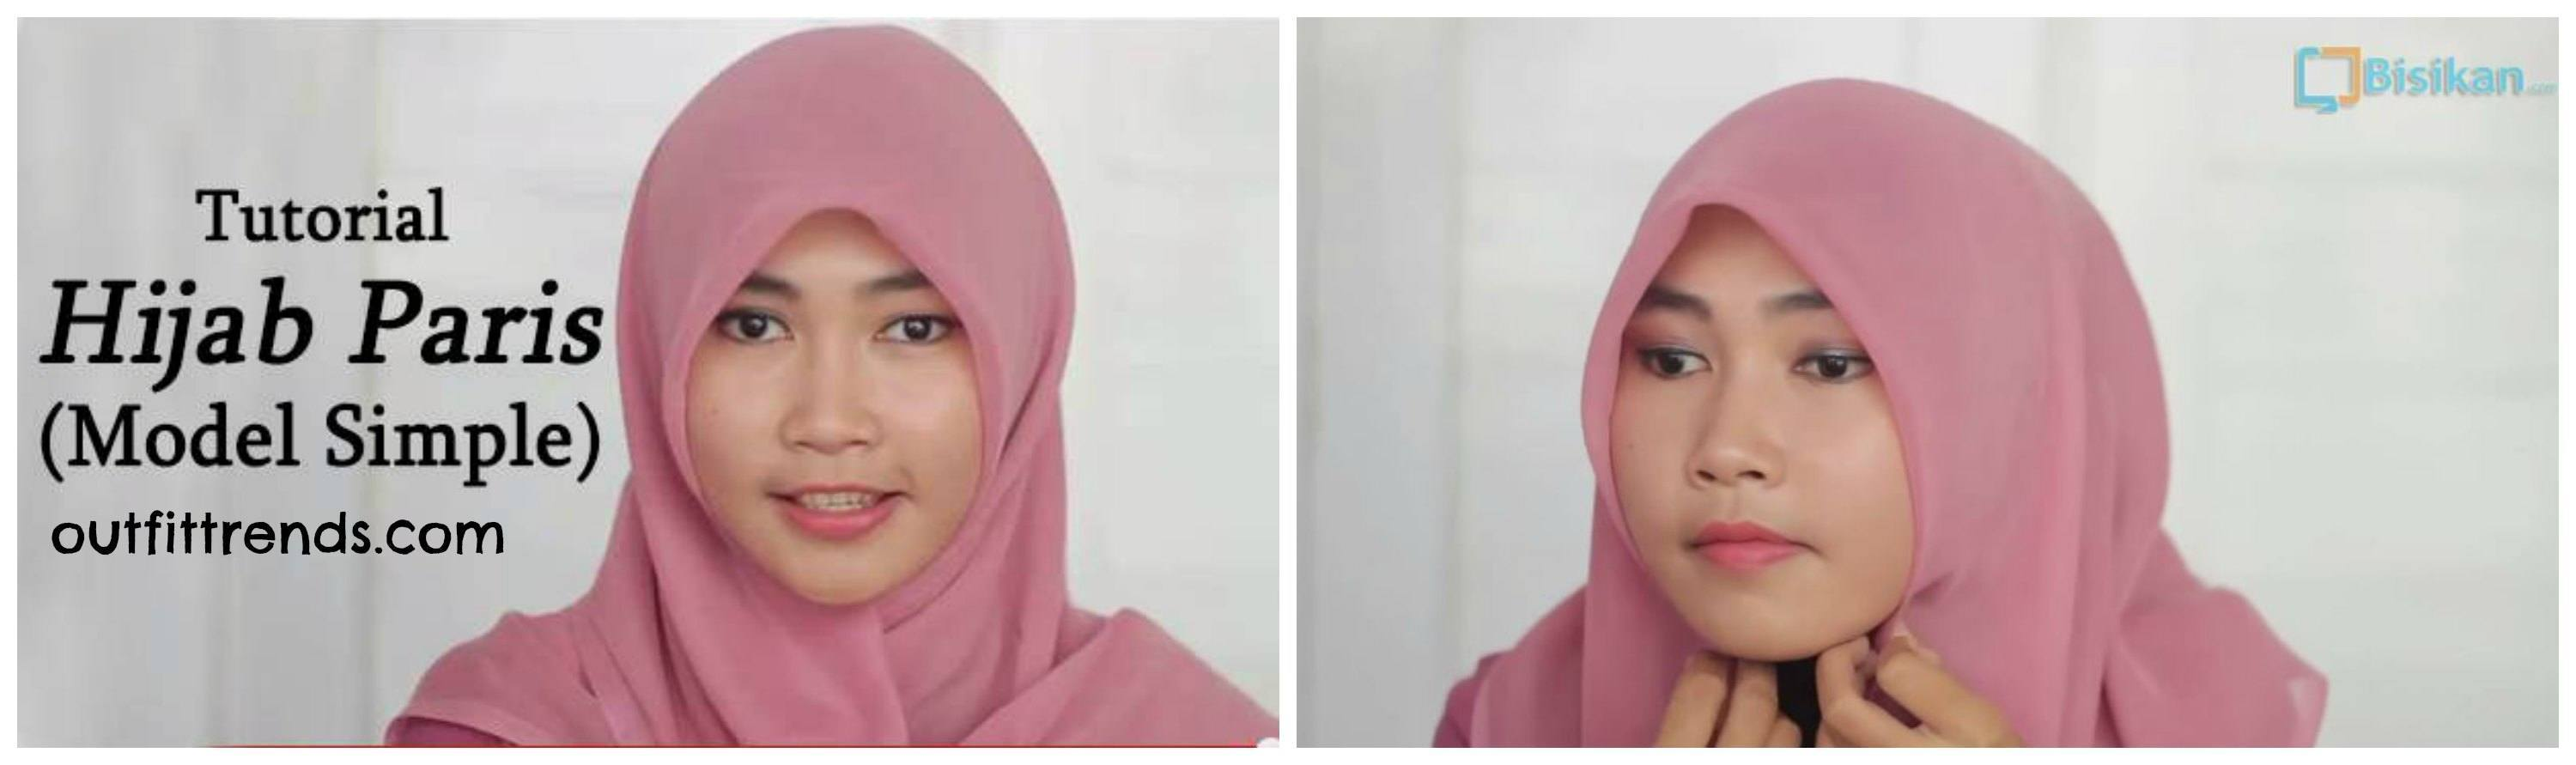 Tutorial Hijab Paris Gaya Ikat | animegue.com